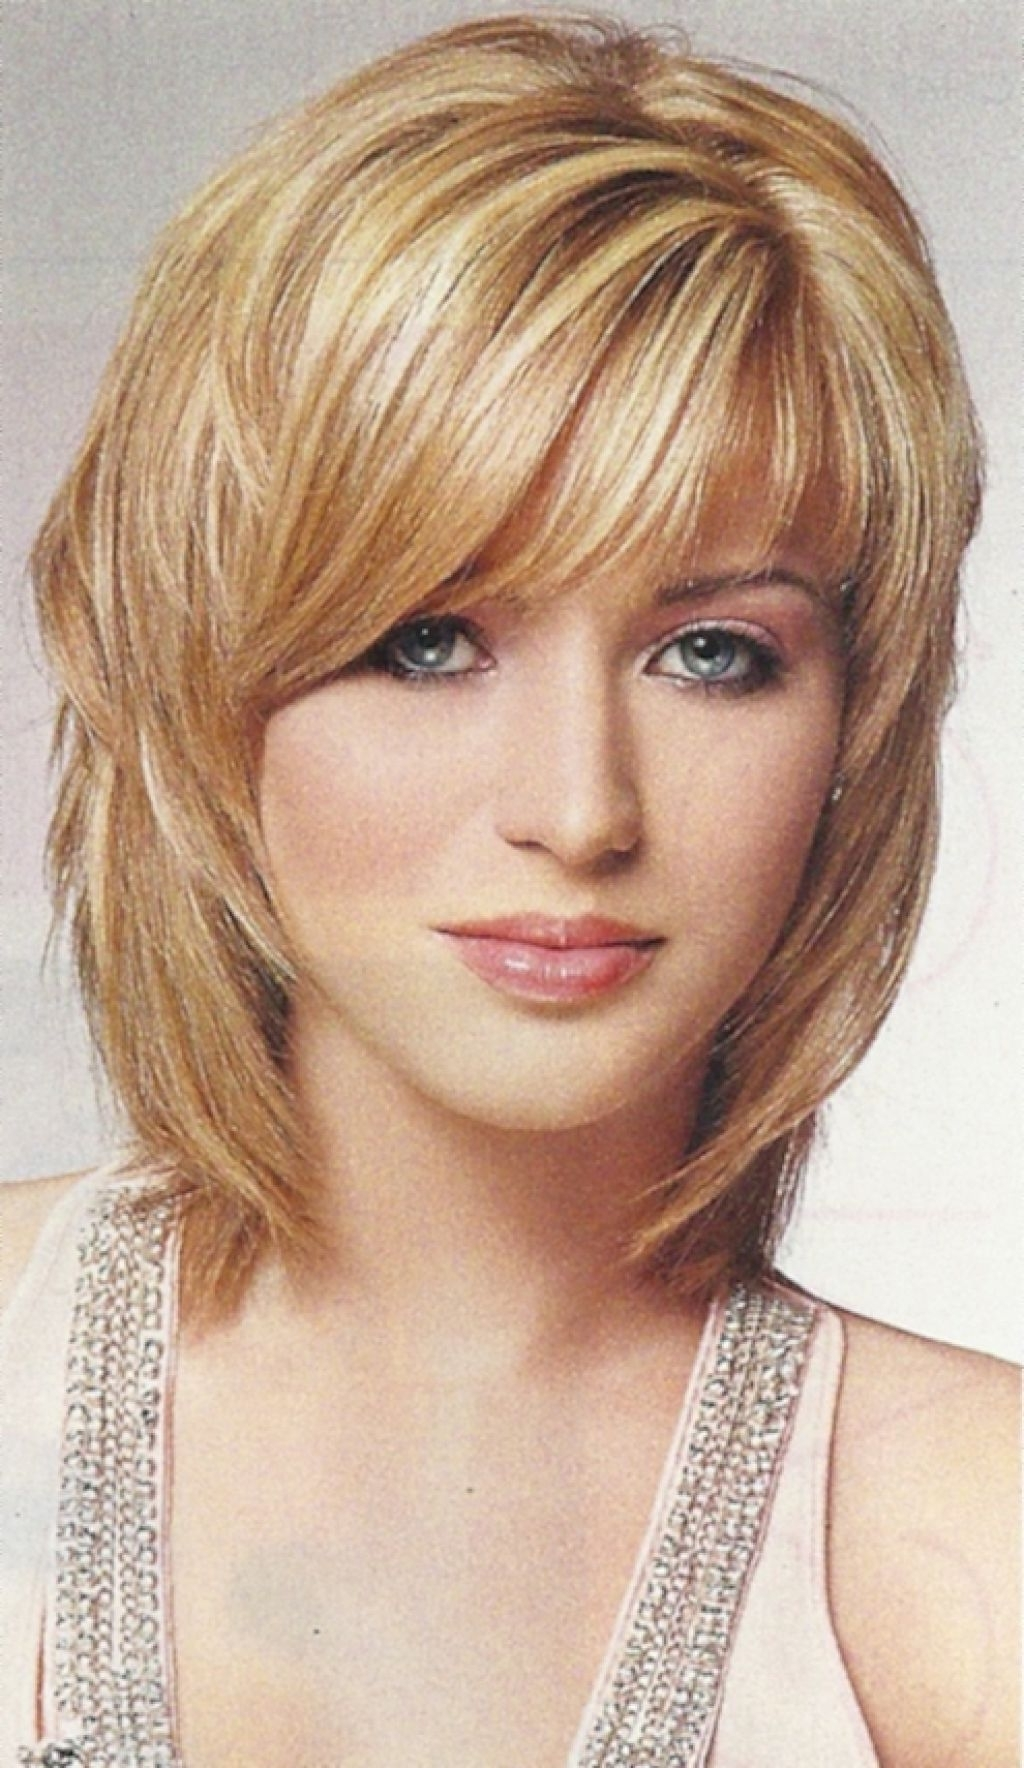 Widely Used Long Shaggy Hairstyles For Round Faces Intended For Medium Haircut Ideas – Hairstyle For Women & Man (View 7 of 15)